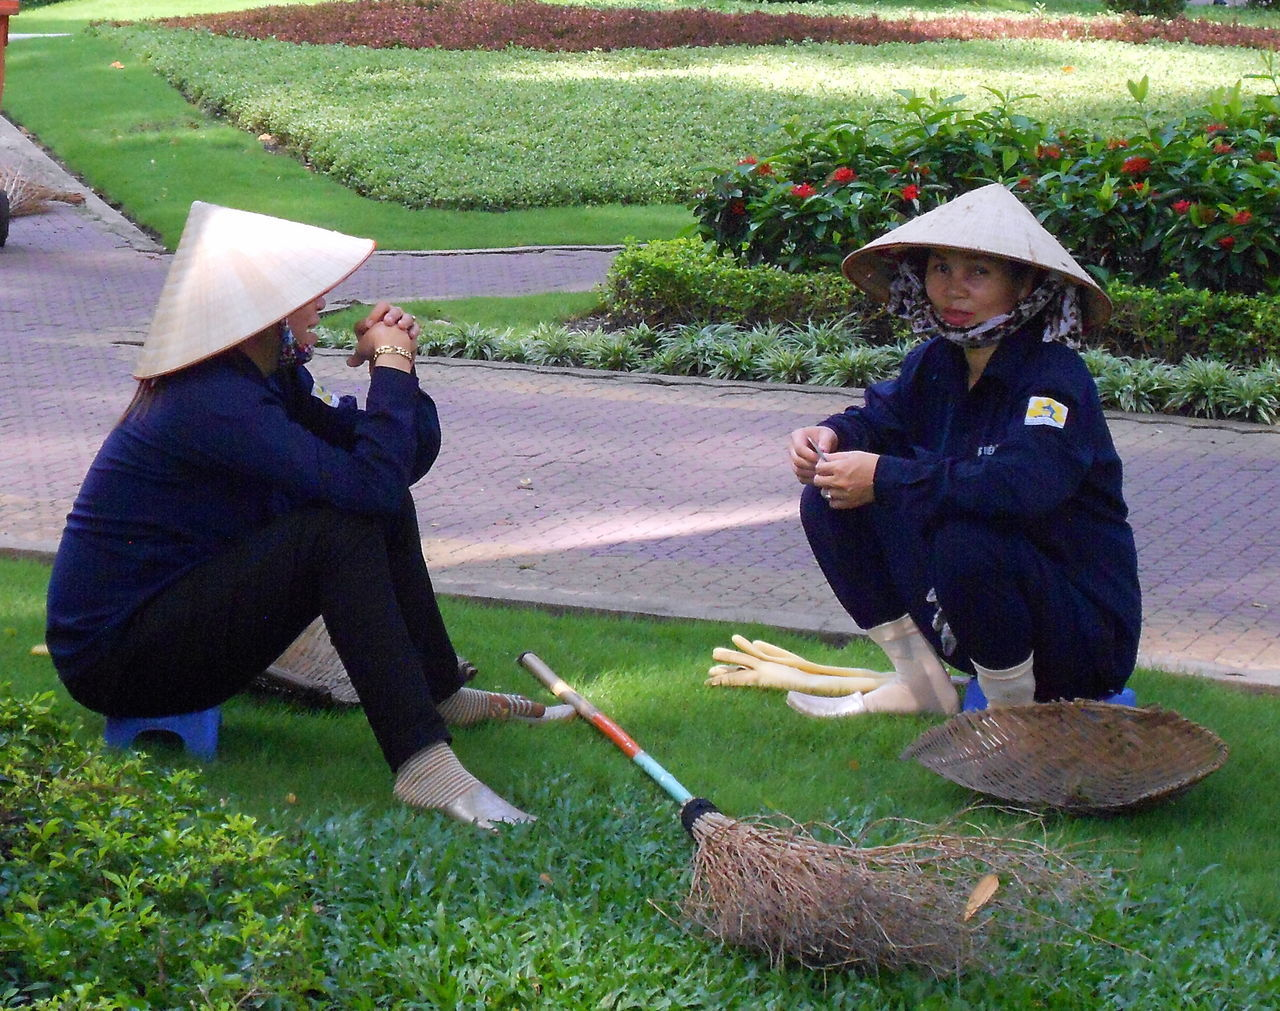 Adult Brush Clear Sky Grass Ho Chi Min City Non La Outdoors People Real People Rest Resting Saigon, Vietnam Sitting Togetherness Two People Two Women Vietnam Travel Vietnam Trip Vietnamese Conical Hat Women Working